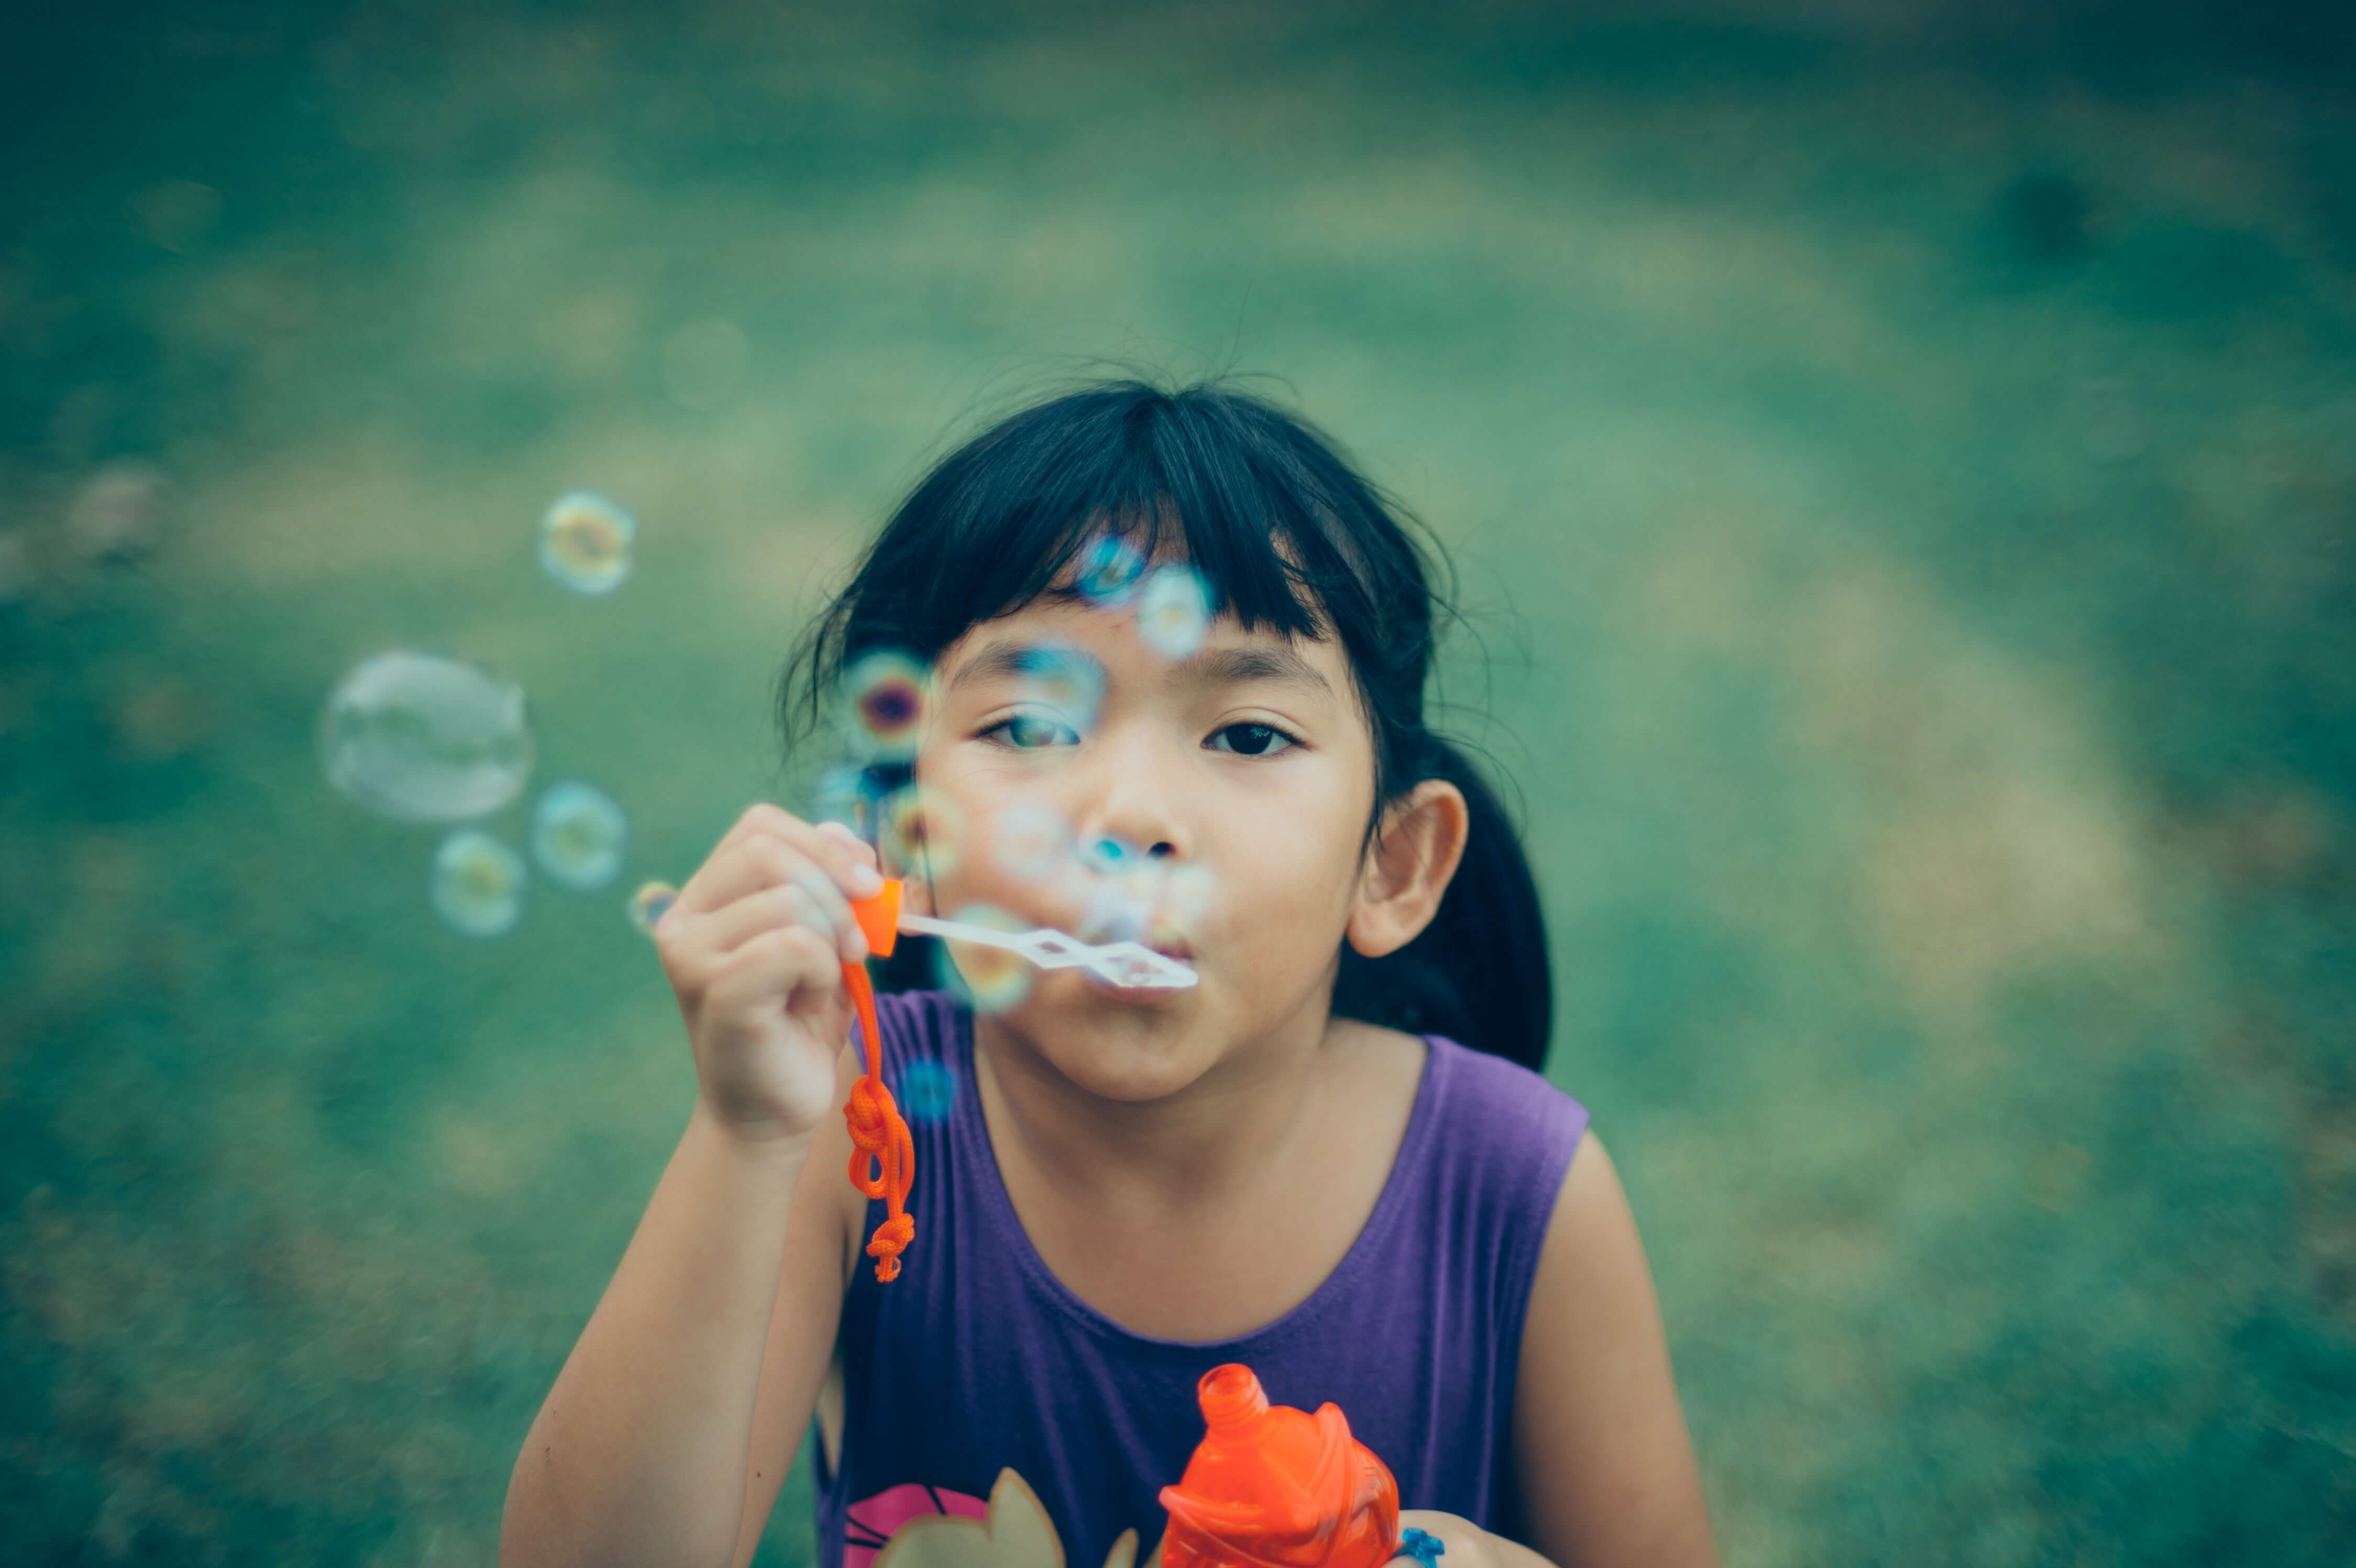 girl blowing bubbles, activities for last days of summer